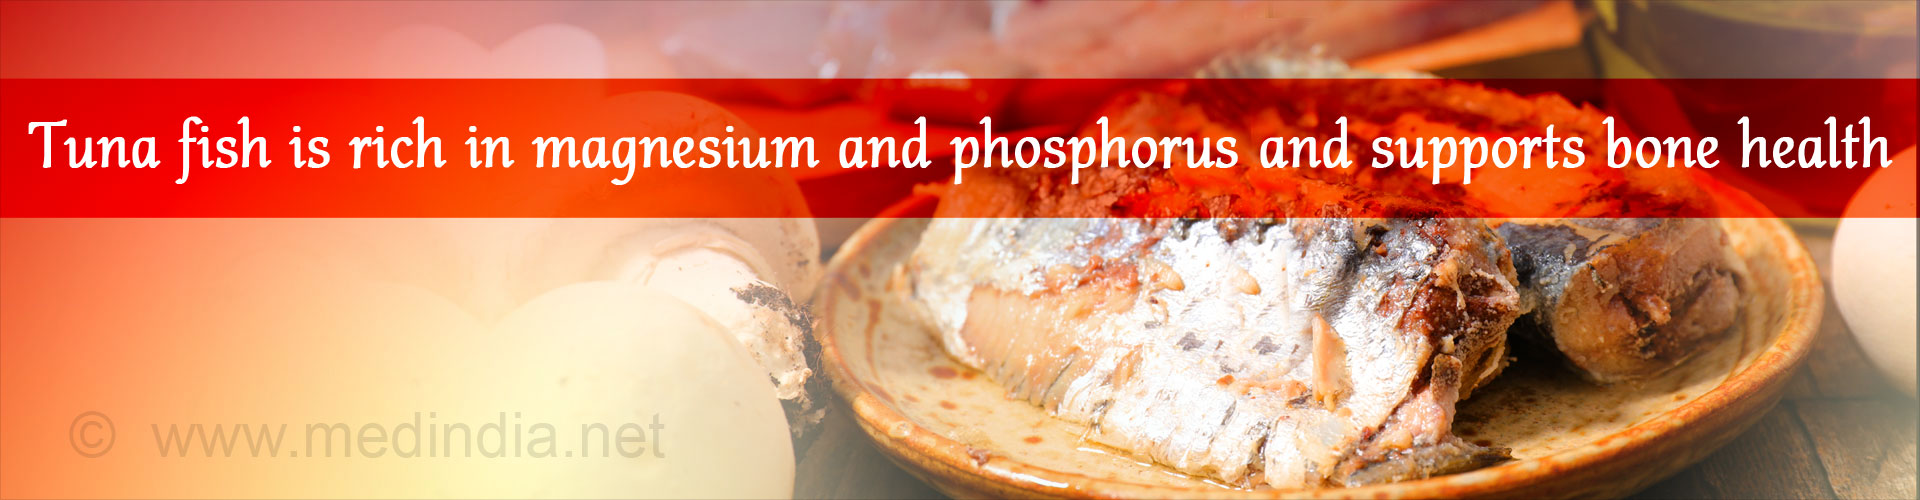 Tuna fish is rich in magnesium and phosphorous and supports bone health